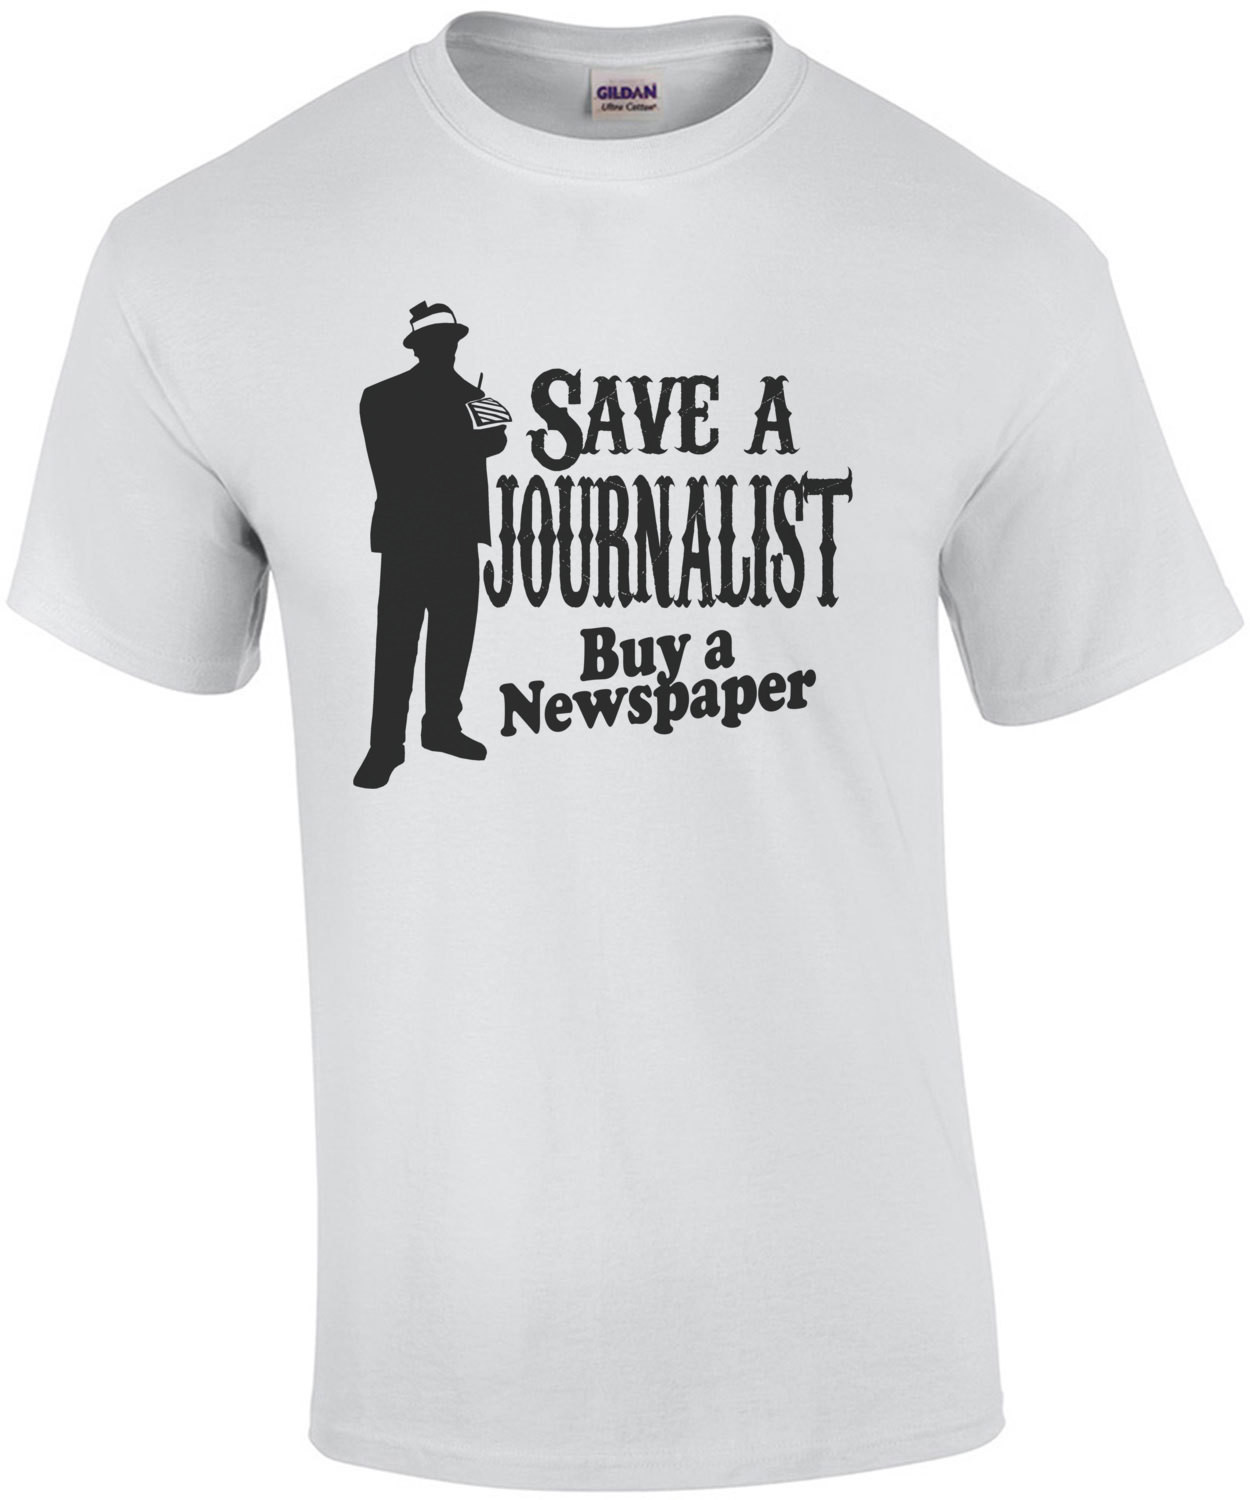 Save A Journalist Buy A Newspaper T-Shirt